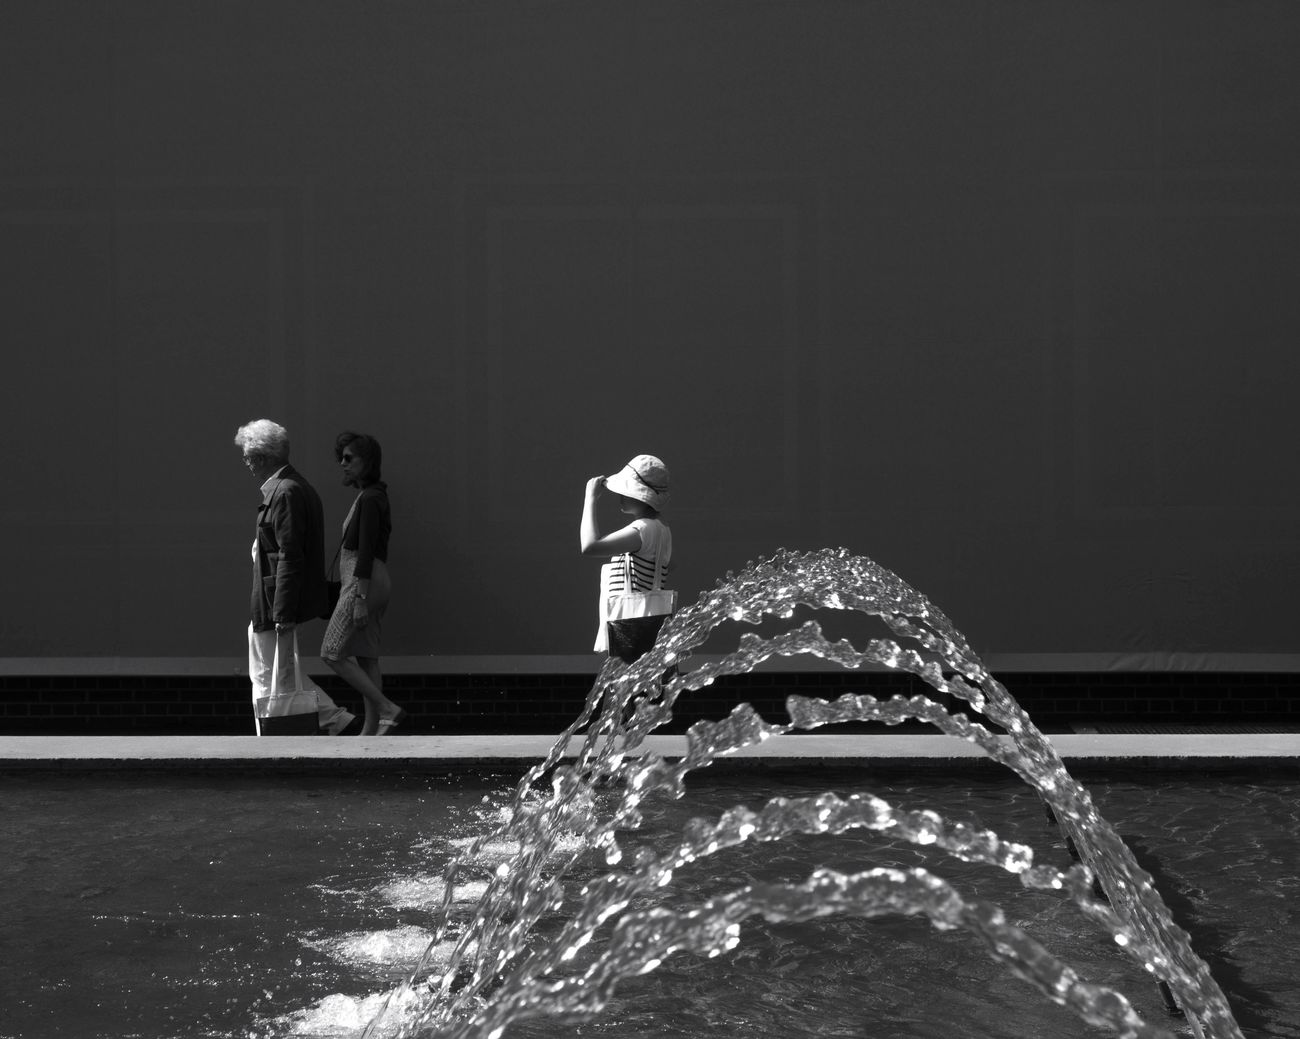 Water Outdoors Streetphotography Fountain Art Basel Waterdrops Real People Day The Street Photographer - 2017 EyeEm Awards